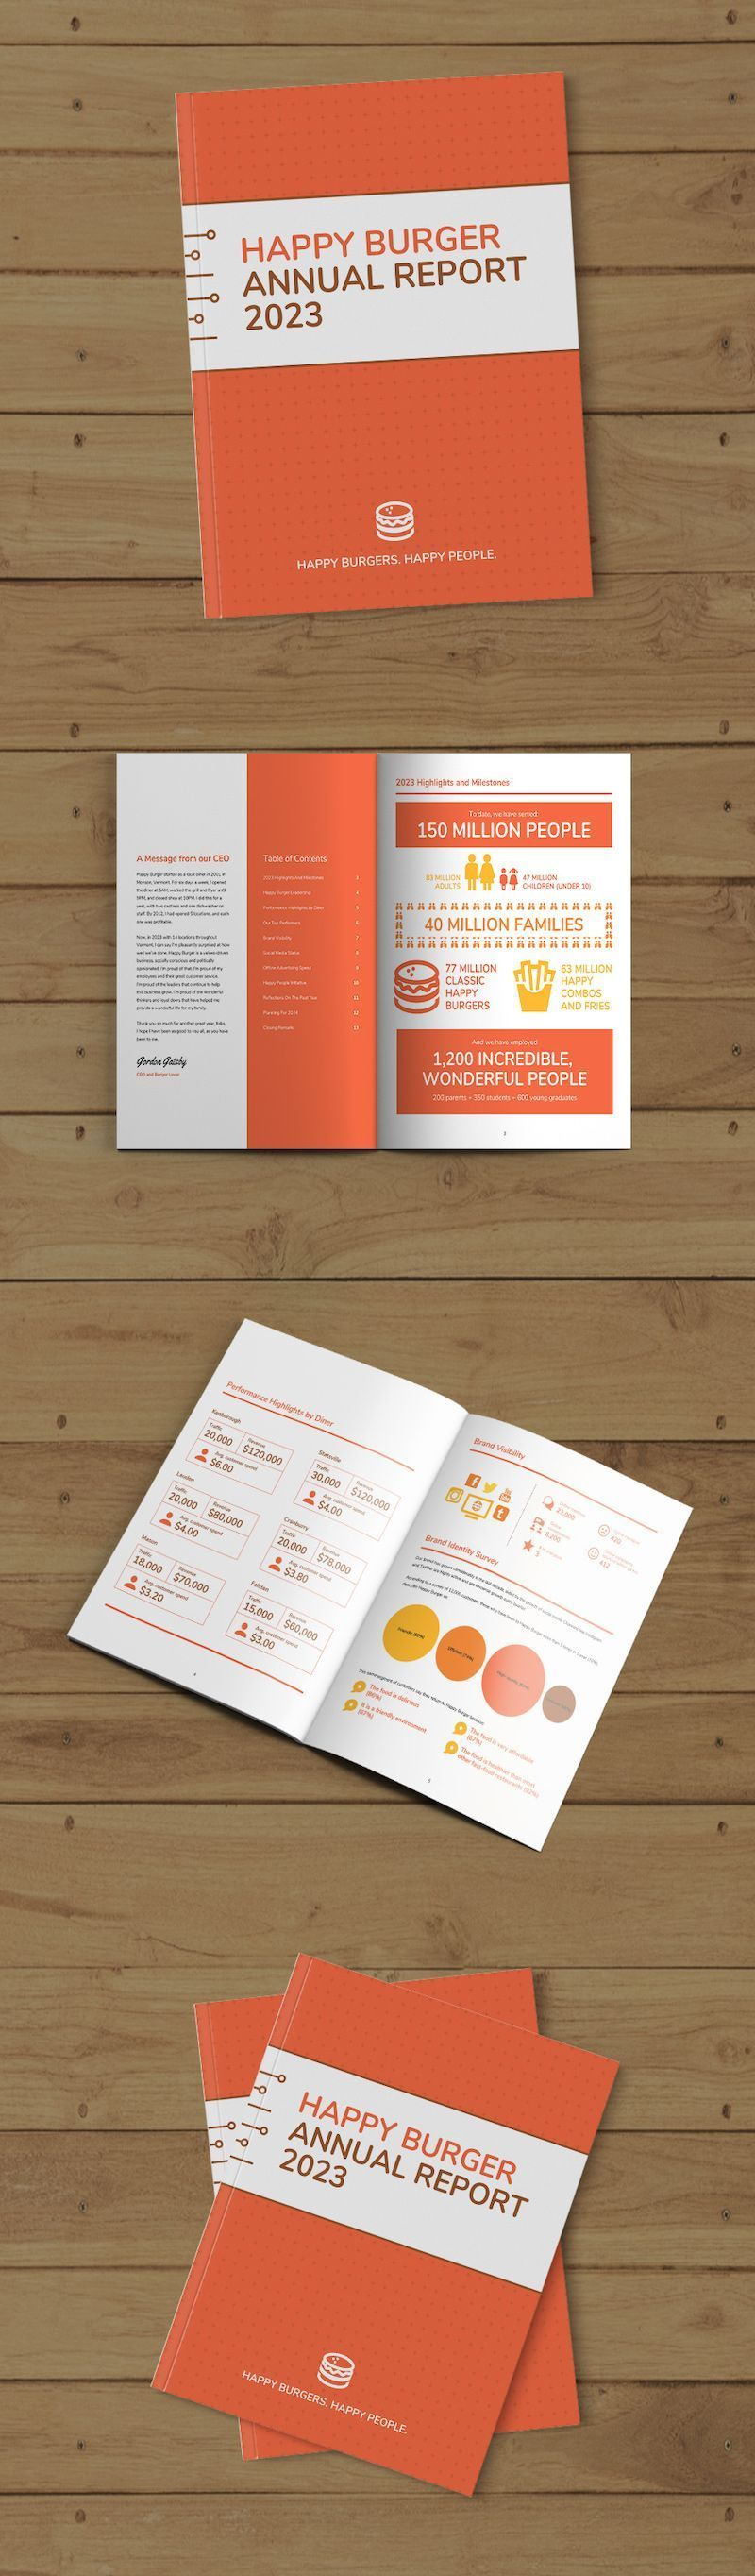 Year End Annual Report Template Template #annualreports Orange Year End Annual Report Template -- Year End Annual Report Template - Show Off The Year's Major Achievements In Your Annual Report, Using This Year End Annual Report Template From Venngage! #annualreports Year End Annual Report Template Template #annualreports Orange Year End Annual Report Template -- Year End Annual Report Template - Show Off The Year's Major Achievements In Your Annual Report, Using This Year End Annual Report Templ #annualreports